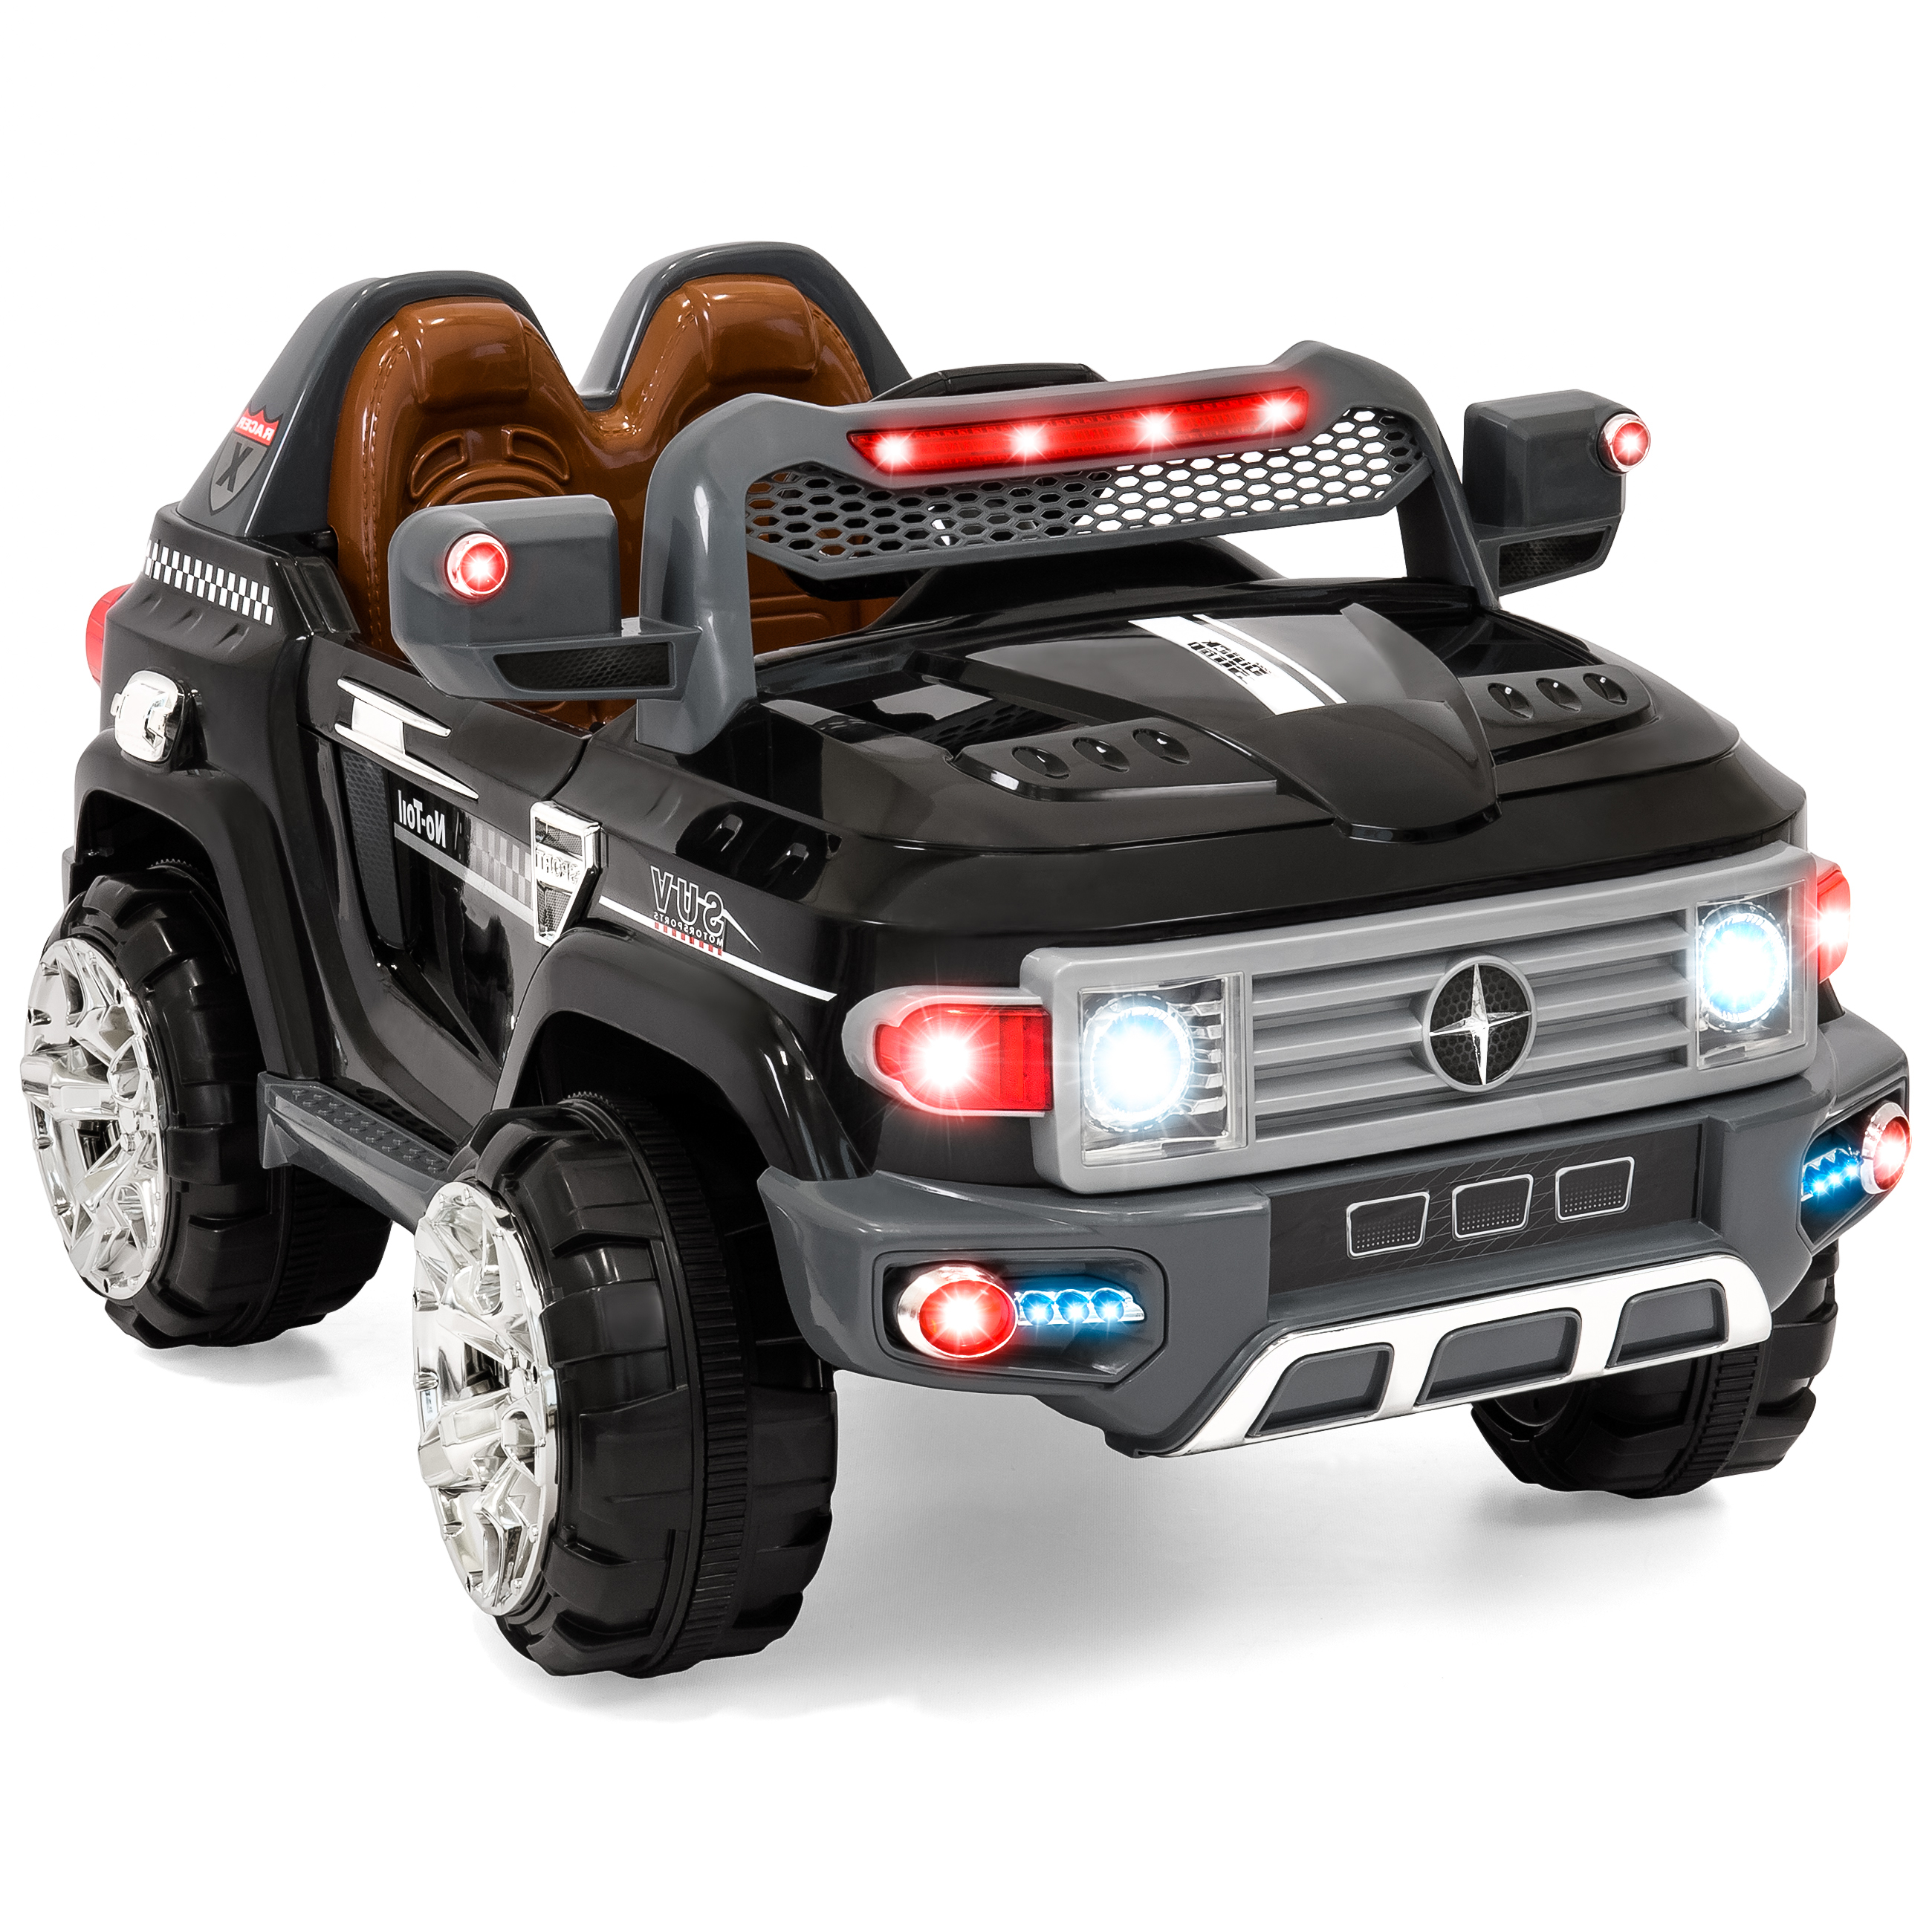 Best Choice Products 12V MP3 Kids Ride on Truck Car RC Remote Control, LED Lights, AUX and Music